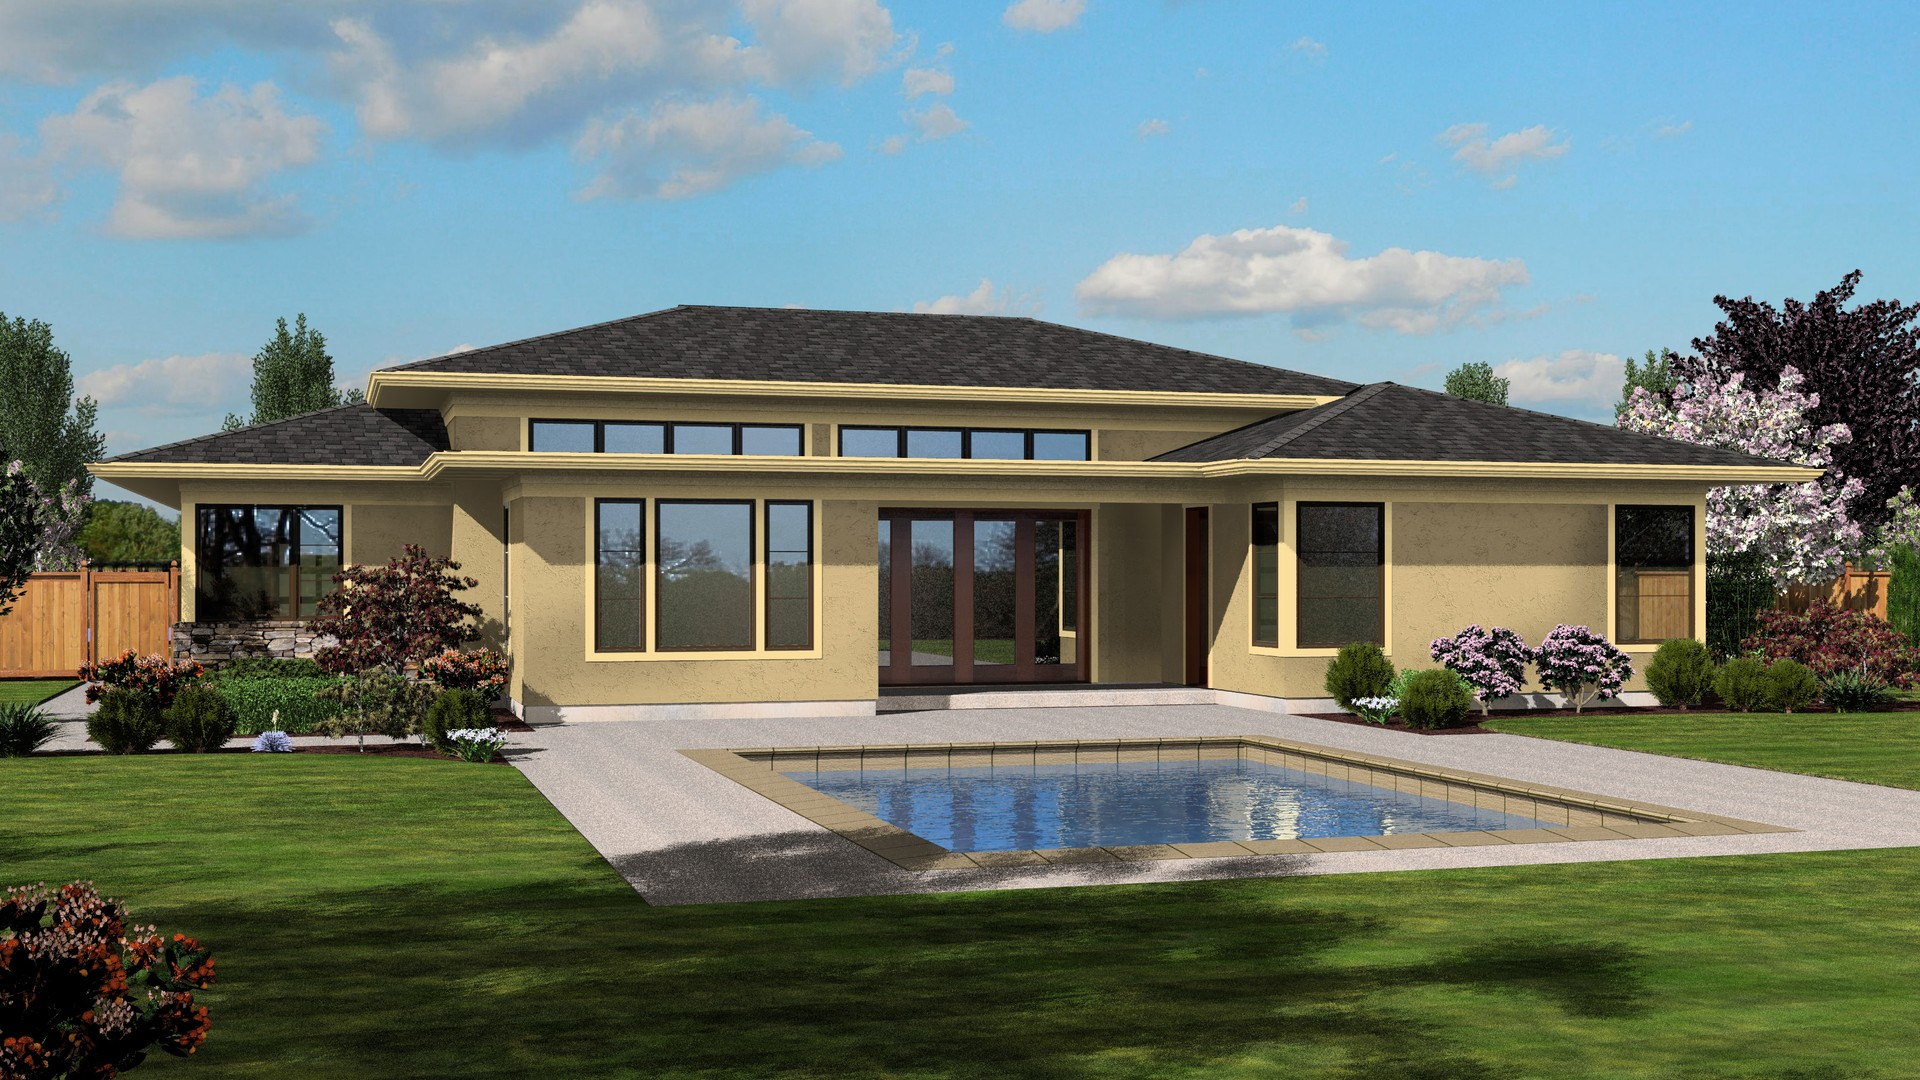 Mascord house plan 1245 the riverside for Ranch house roof styles